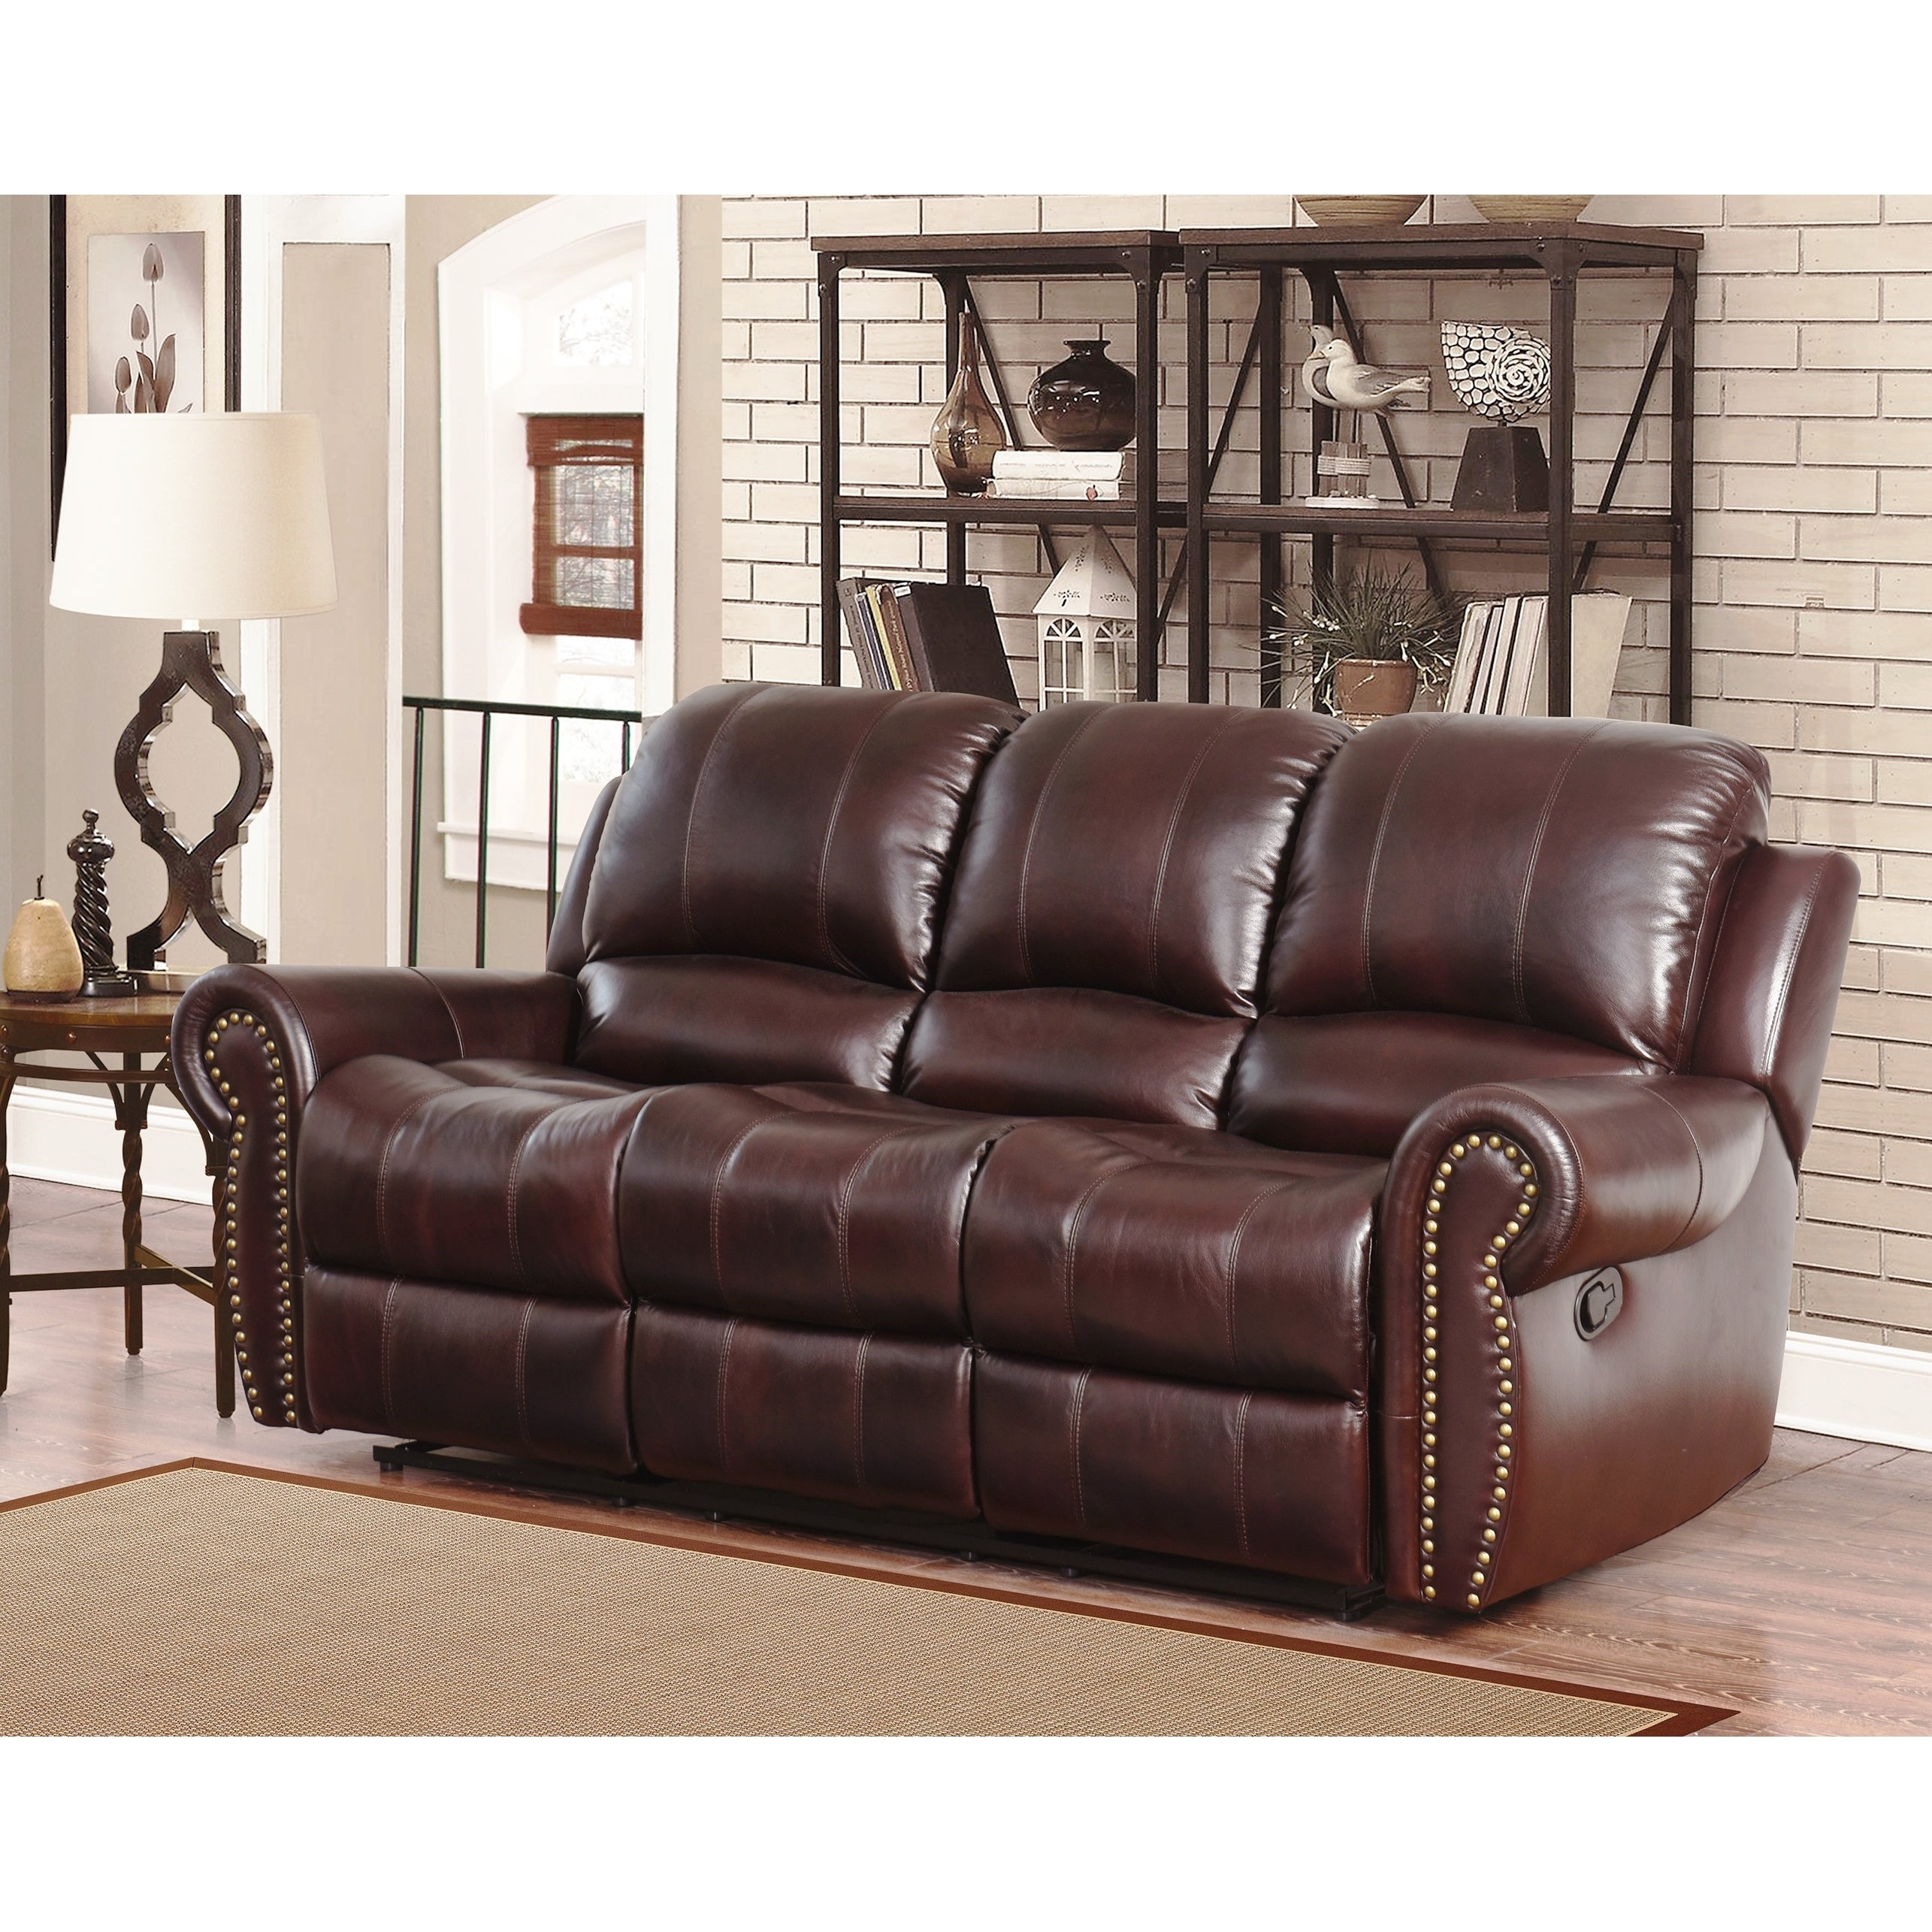 Abbyson Broadway Top Grain Leather Reclining 2 Piece Living Room Set   Free  Shipping Today   Overstock   12931794